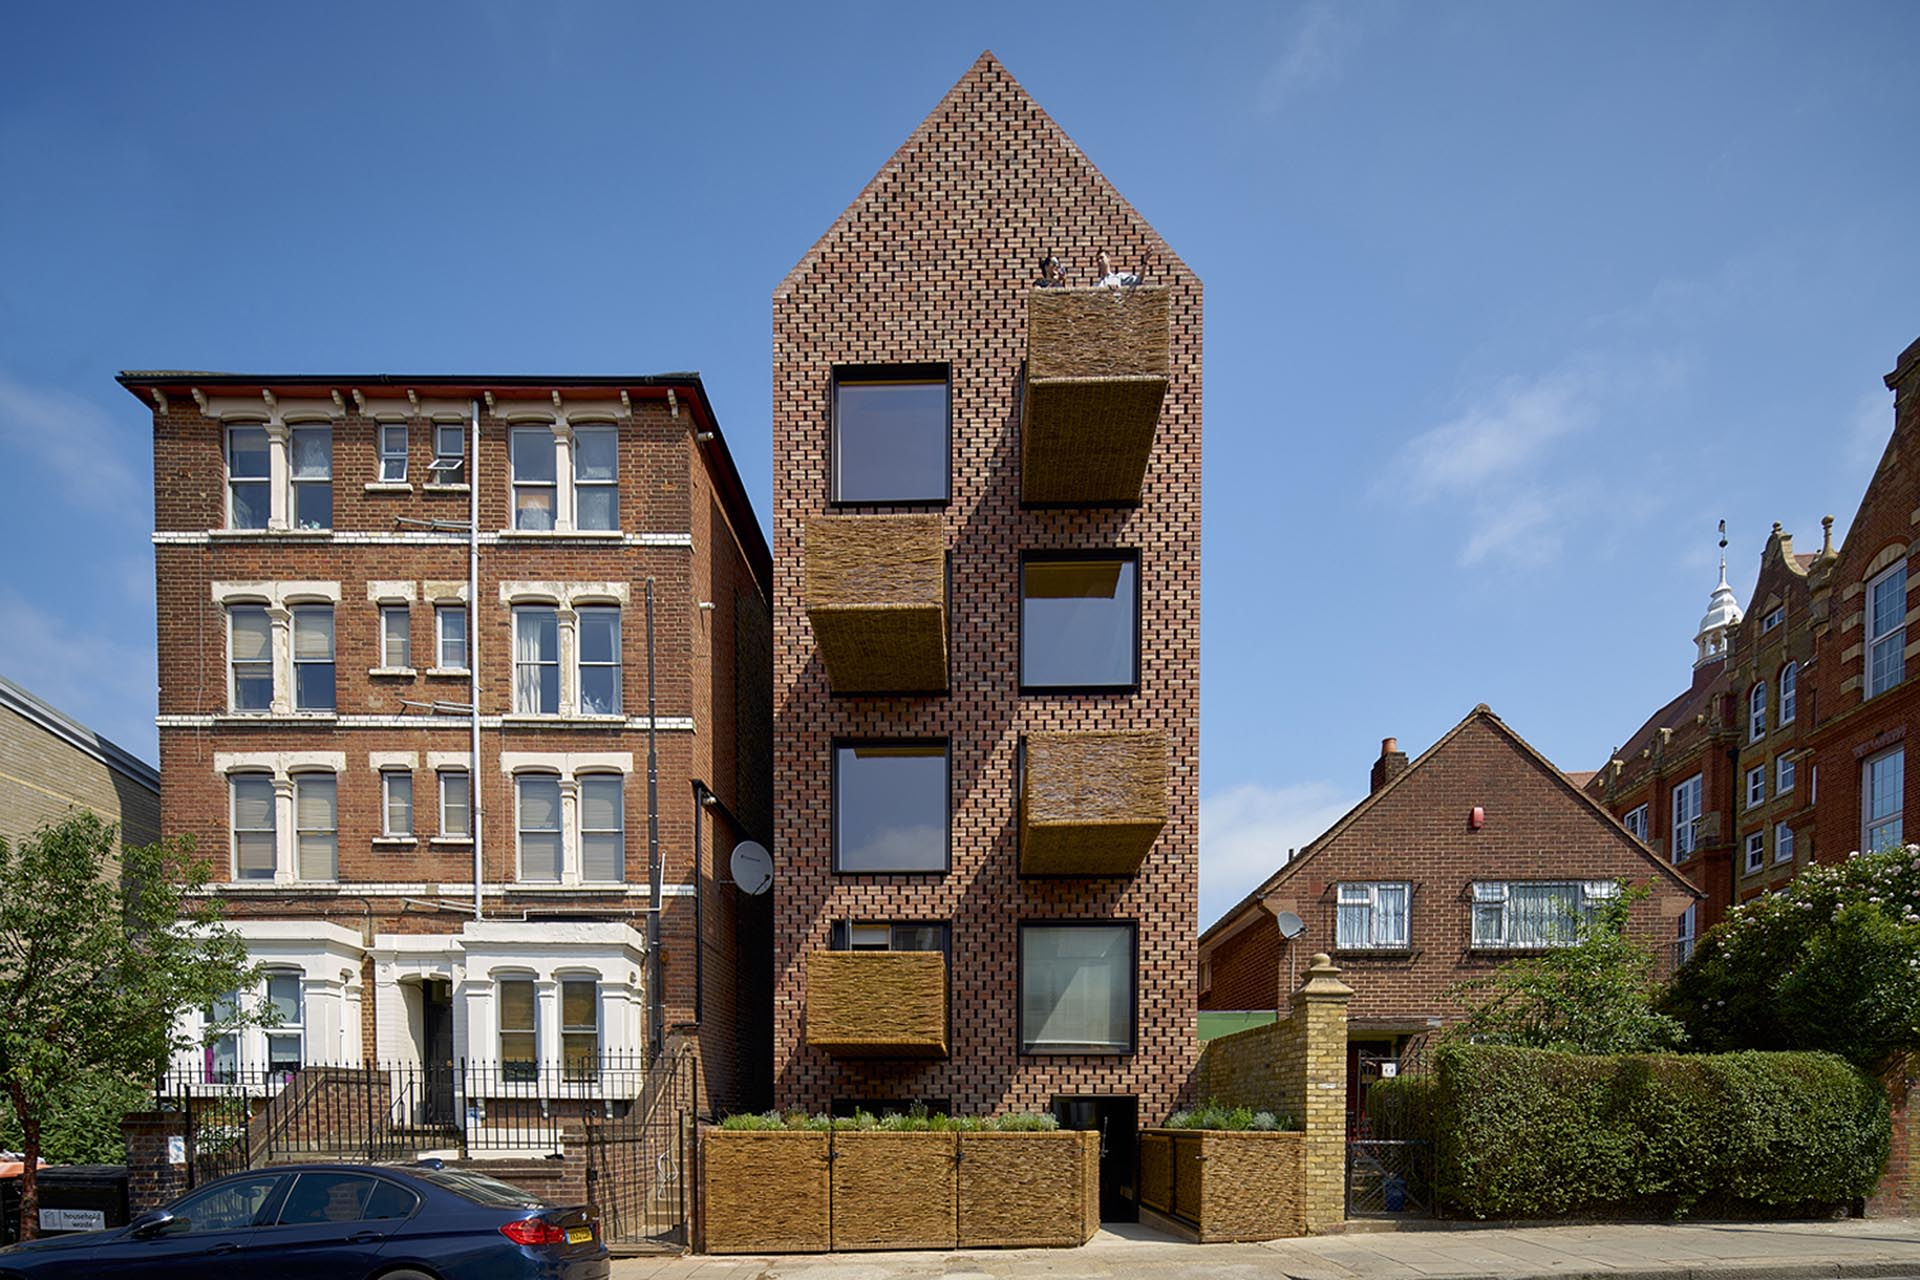 A brick building with steel window frames and protruding woven wicker balconies.